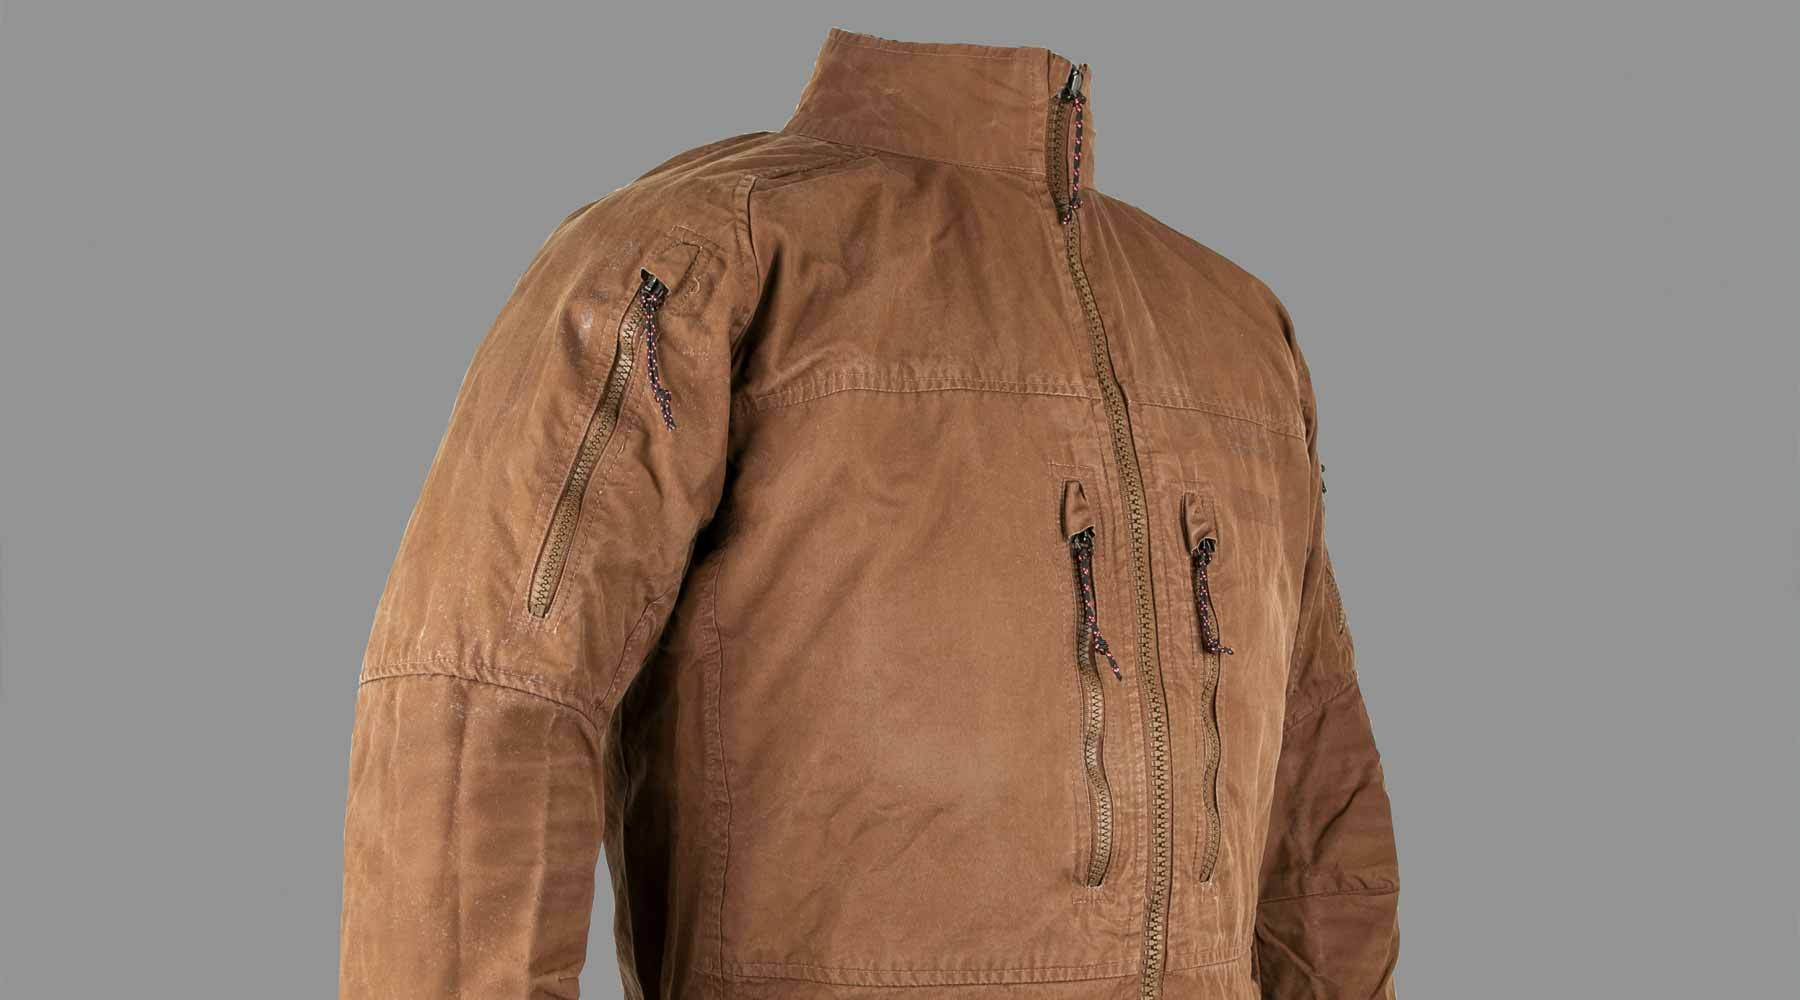 image of ventile windshell prototype jacket